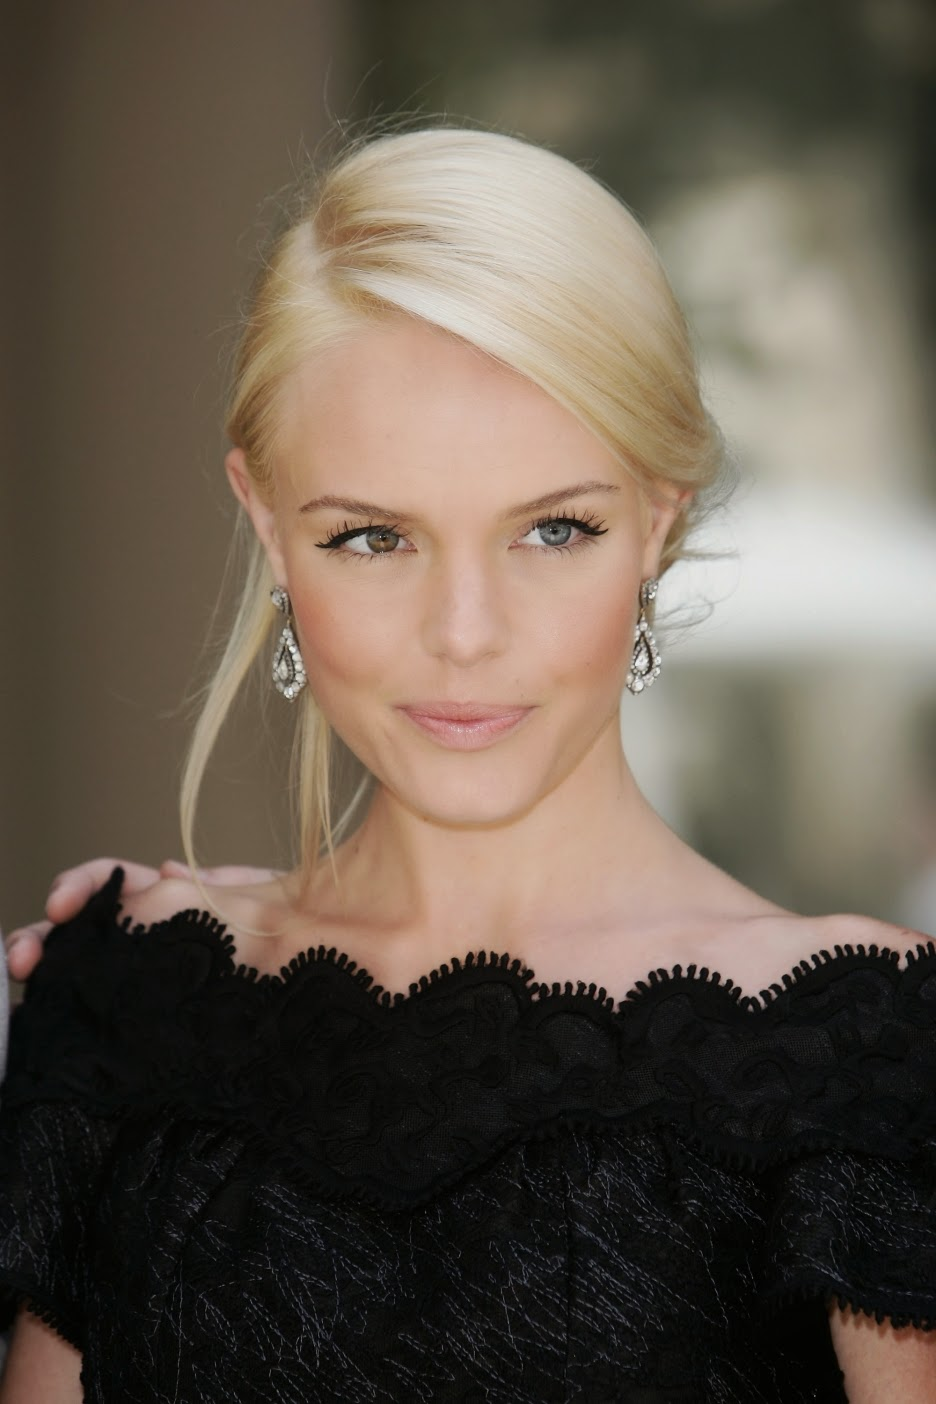 Chatter Busy: Kate Bosworth Naked Photos Leaked Kate Bosworth